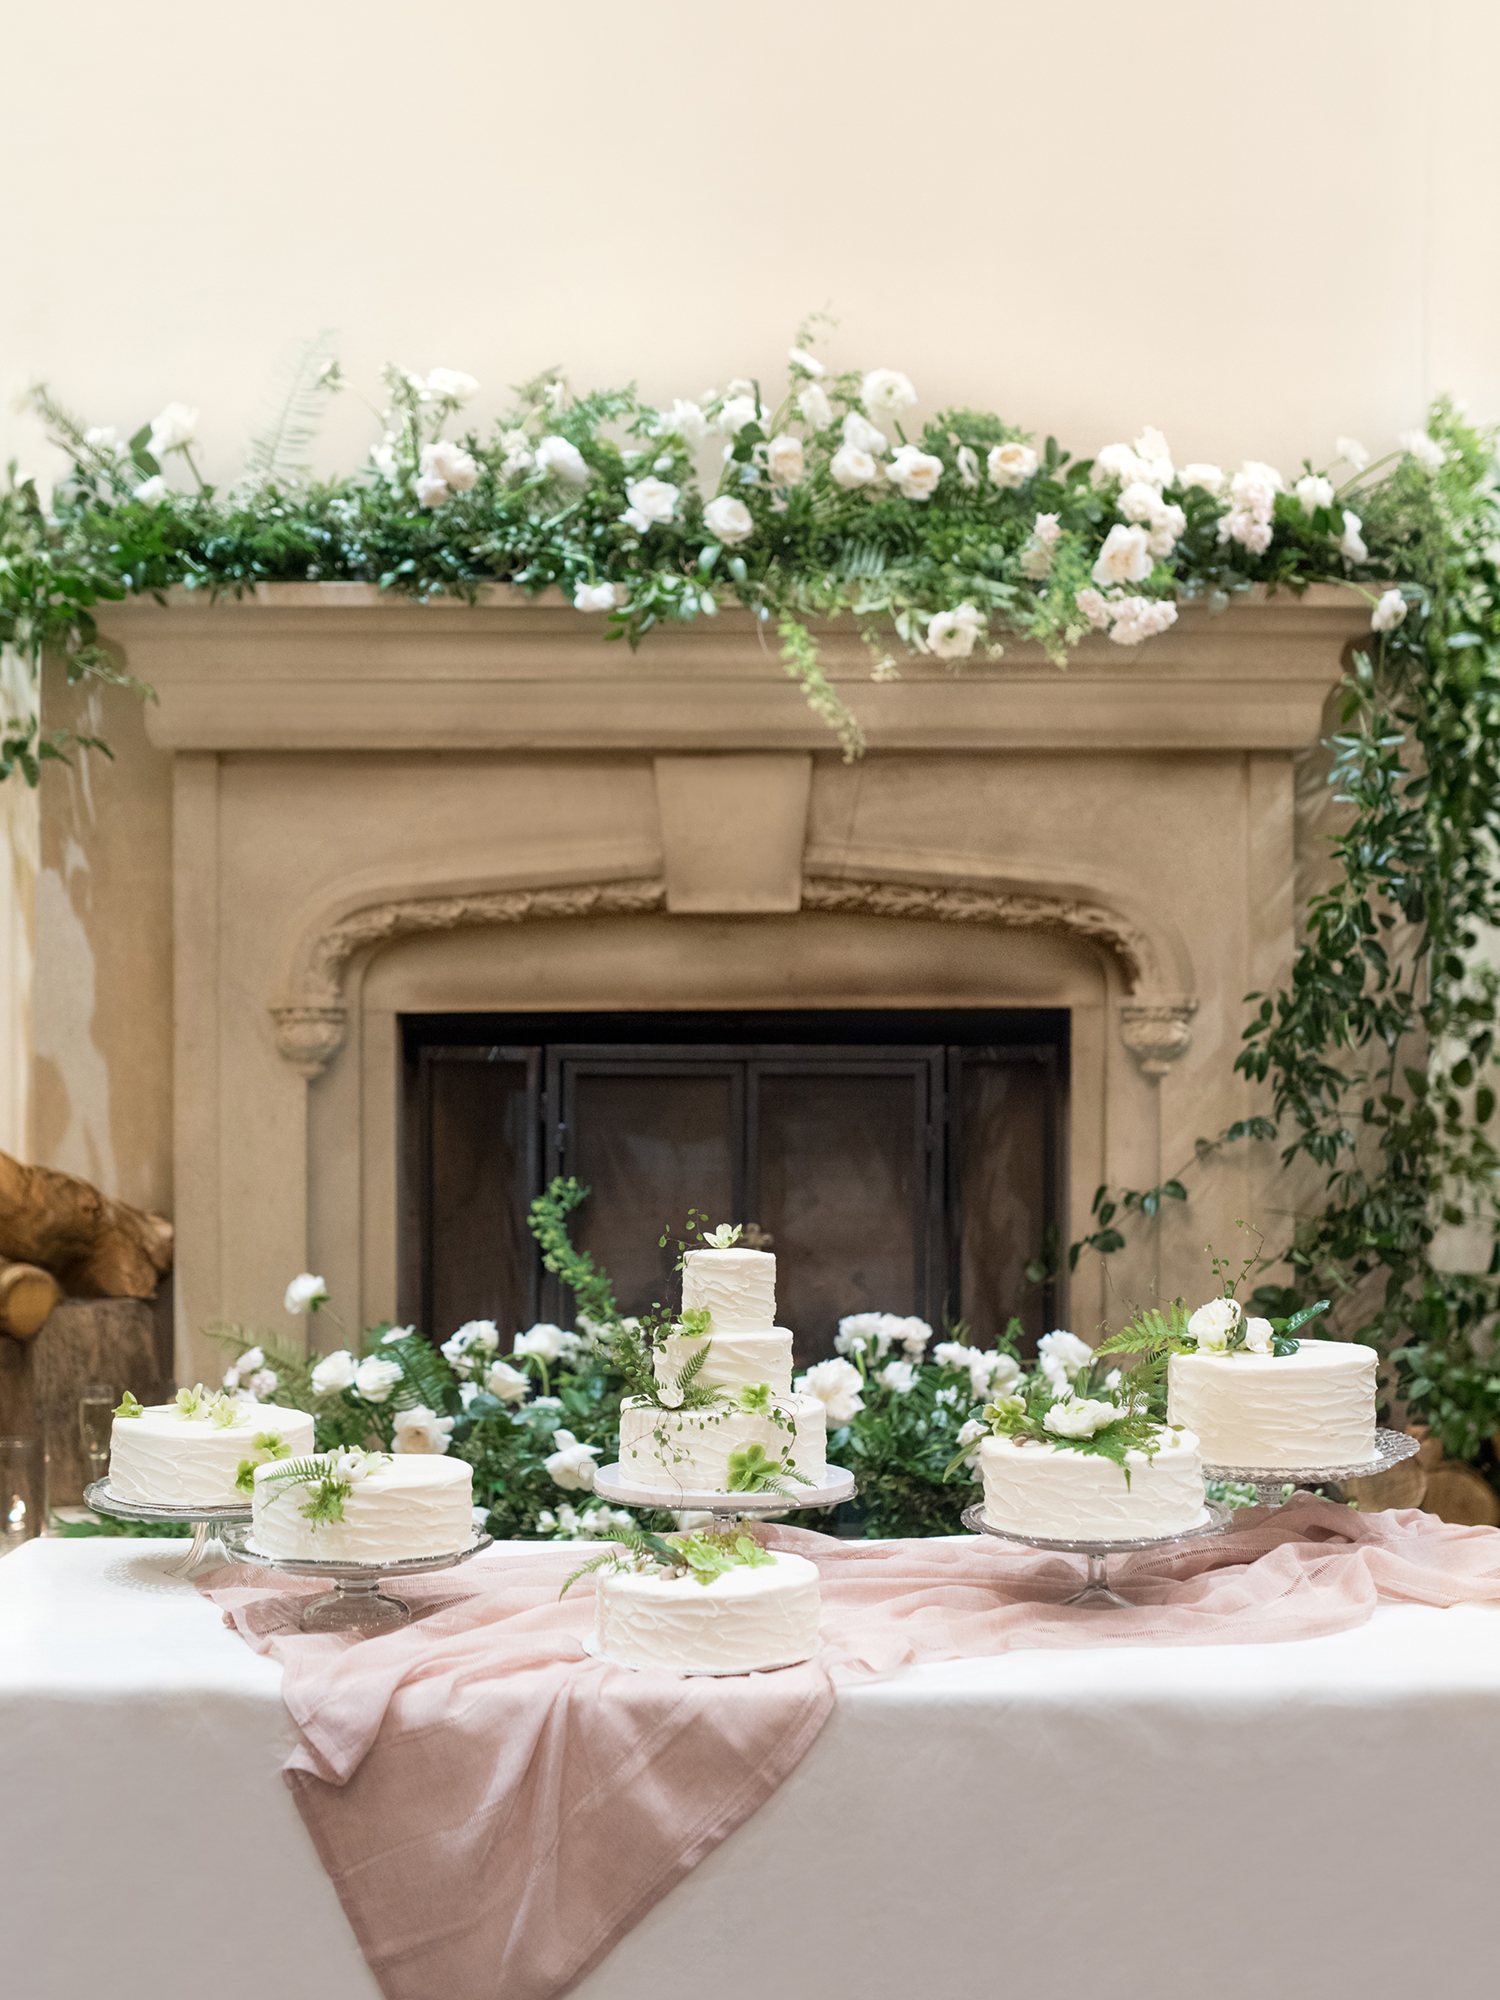 lauren aaron wedding cakes in front of fire place